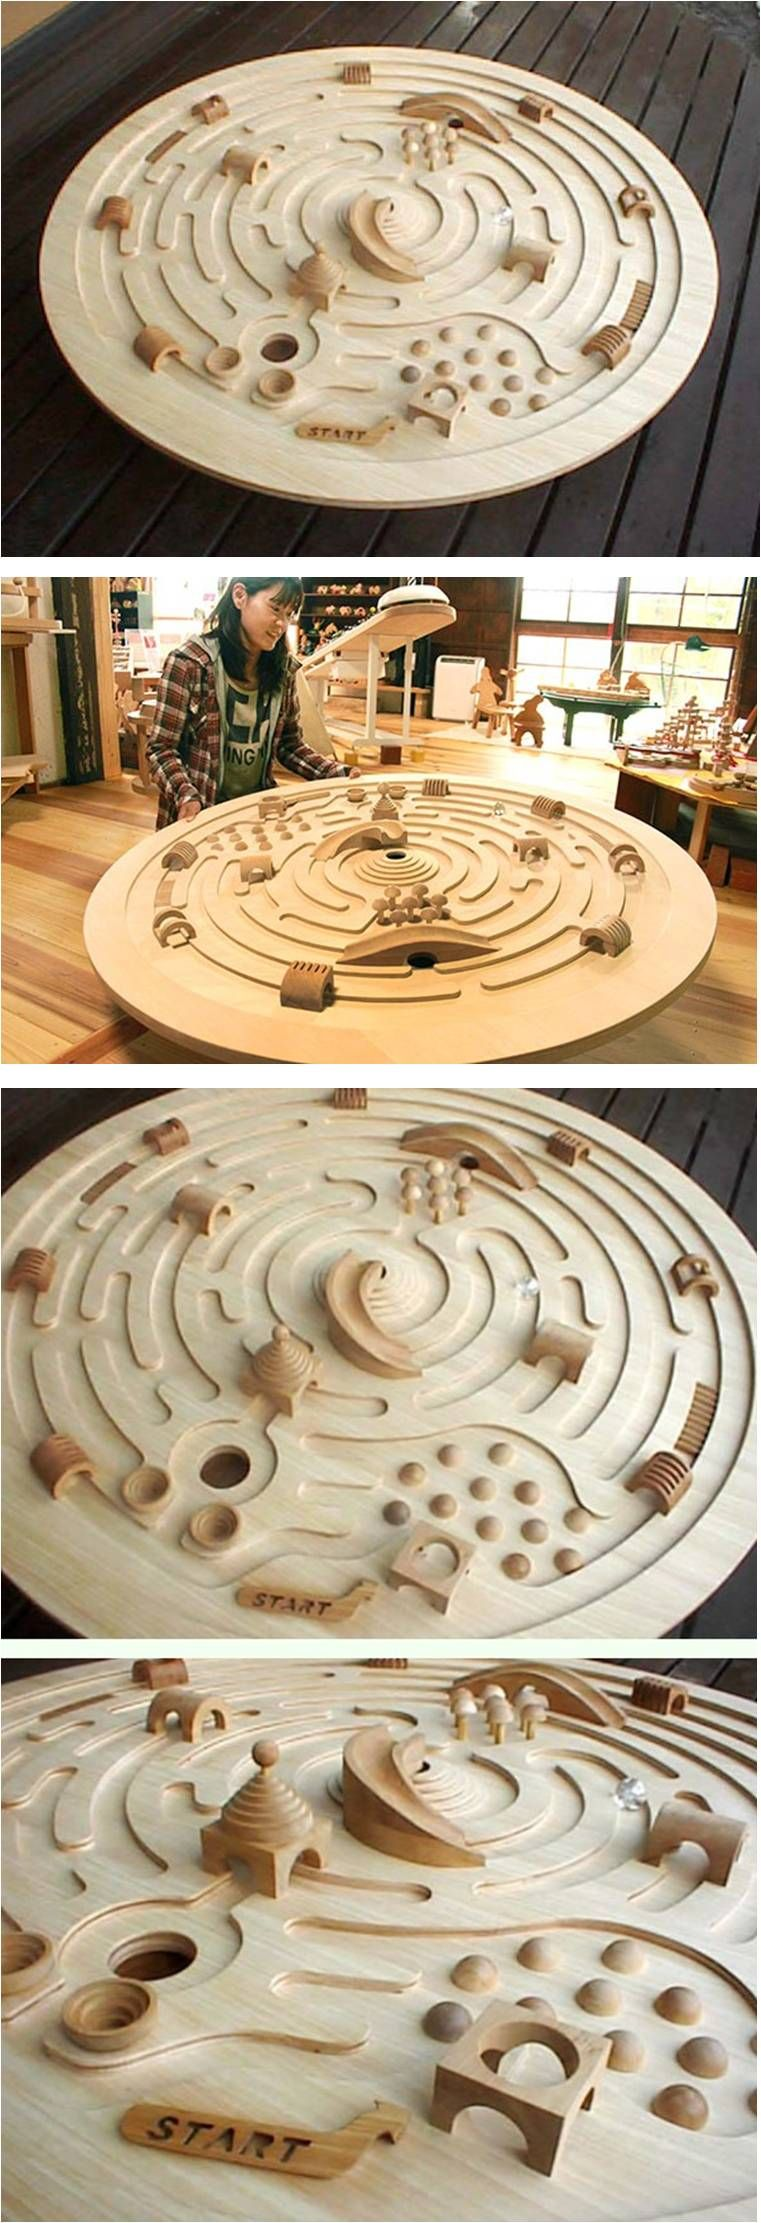 Large Swivelling Wooden Labyrinth by Ginga Kobo Toys, Japan - An immense spaceship labyrinth with a diameter of 120cm. The marblesque 3 cm. large glass balls roll around circling towards the center. Aim for the chute which leads into the mouth of the volcano! Creative obstacles block the way! Great to encourage cooperative play, as 2 or 3 kids can work together to conquer the labyrinth.